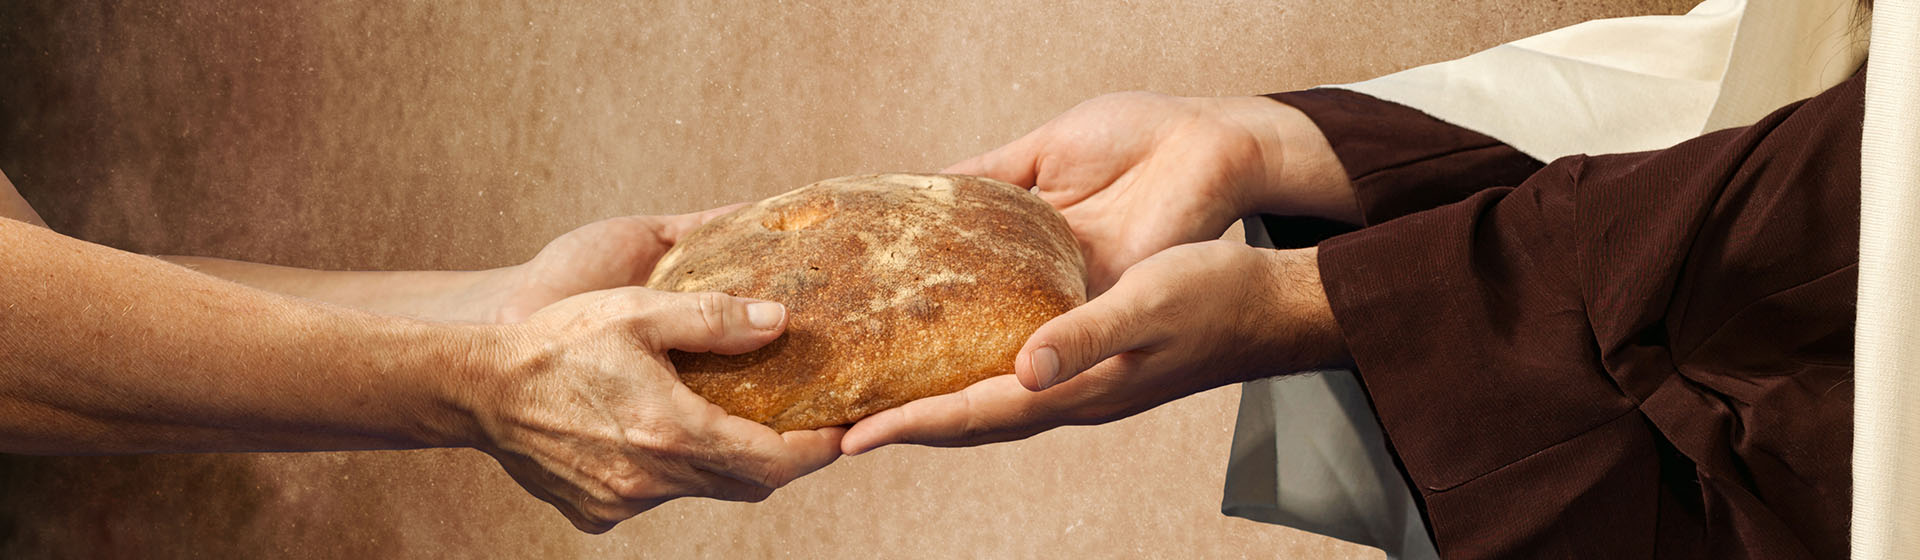 rustic photo depicting Jesus' hands handing a loaf of bread to another man